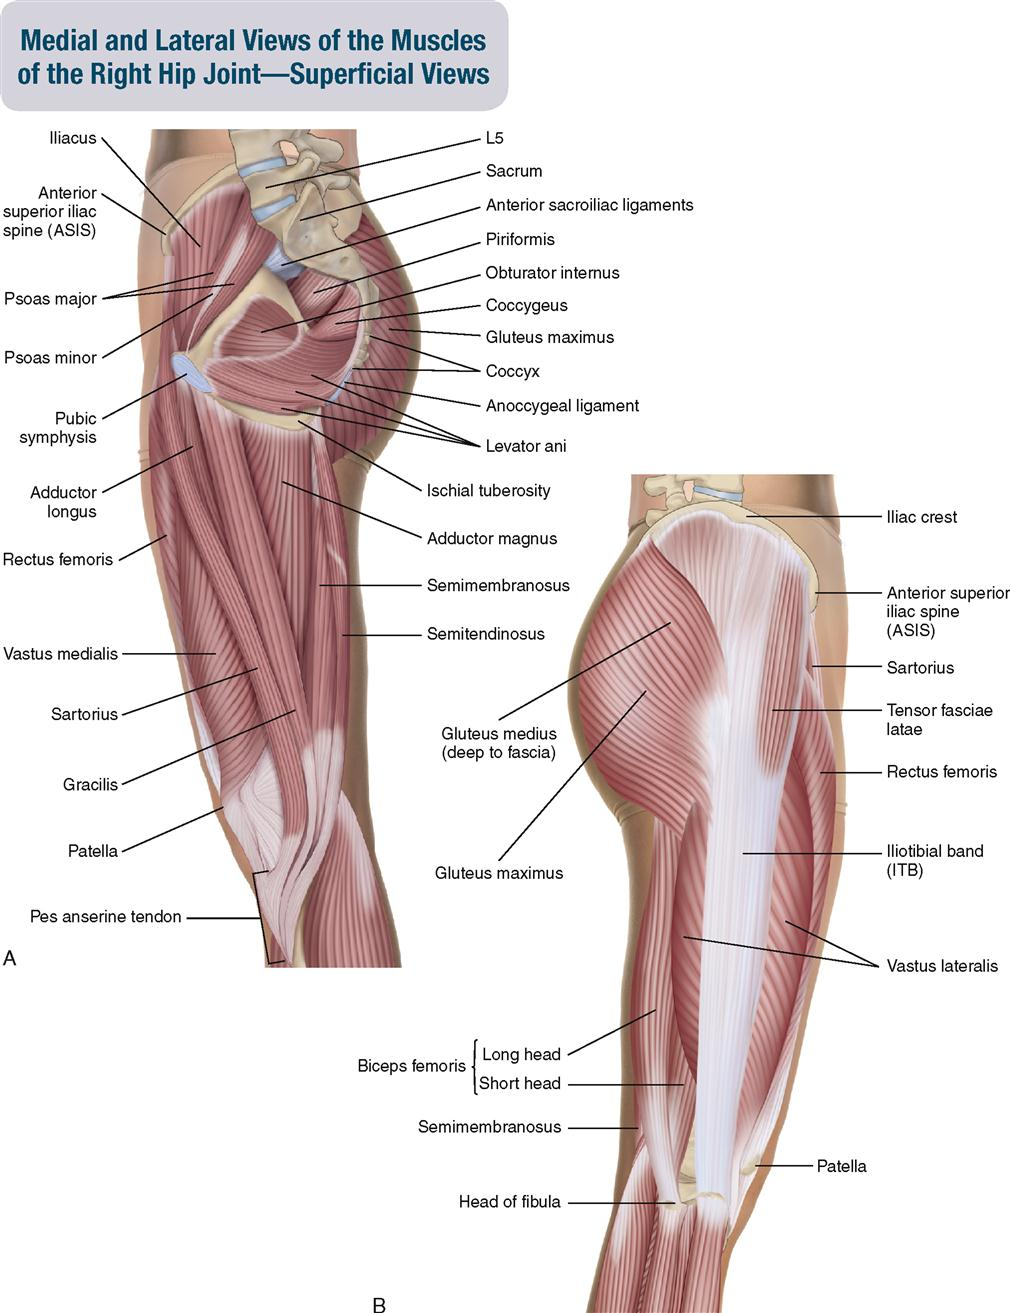 10. Muscles of the Pelvis and Thigh | Musculoskeletal Key